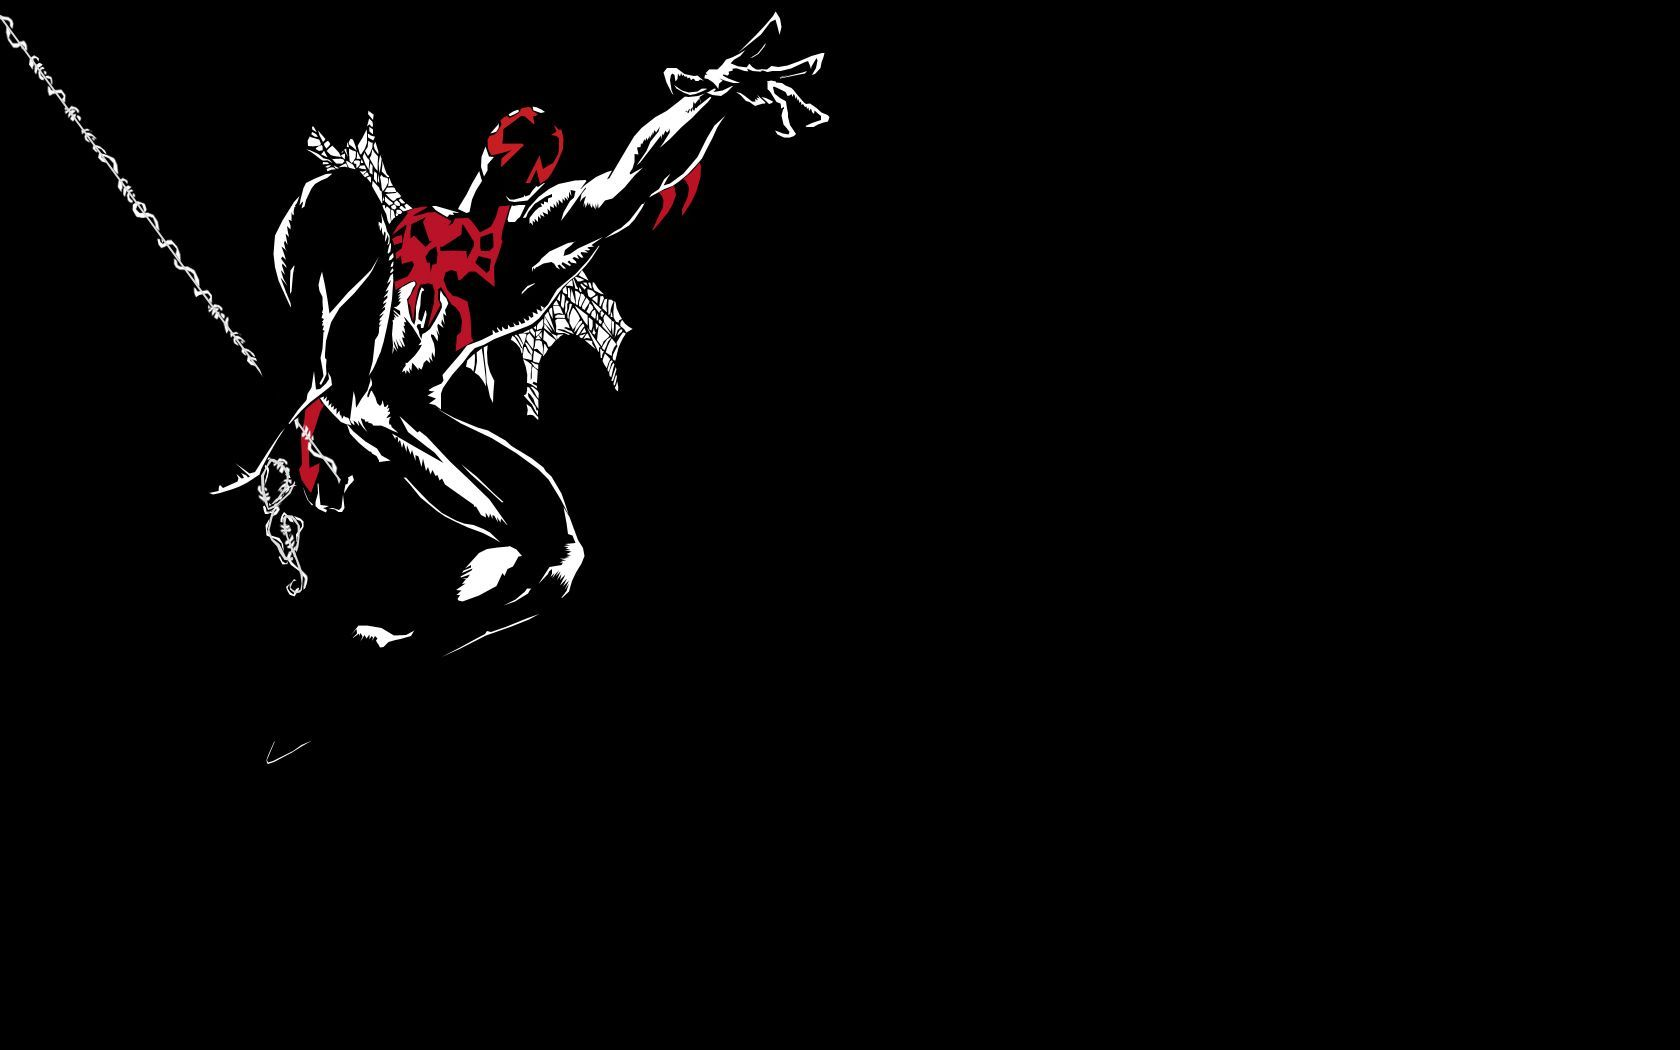 Spiderman 2099 Wallpaper Sf Wallpaper